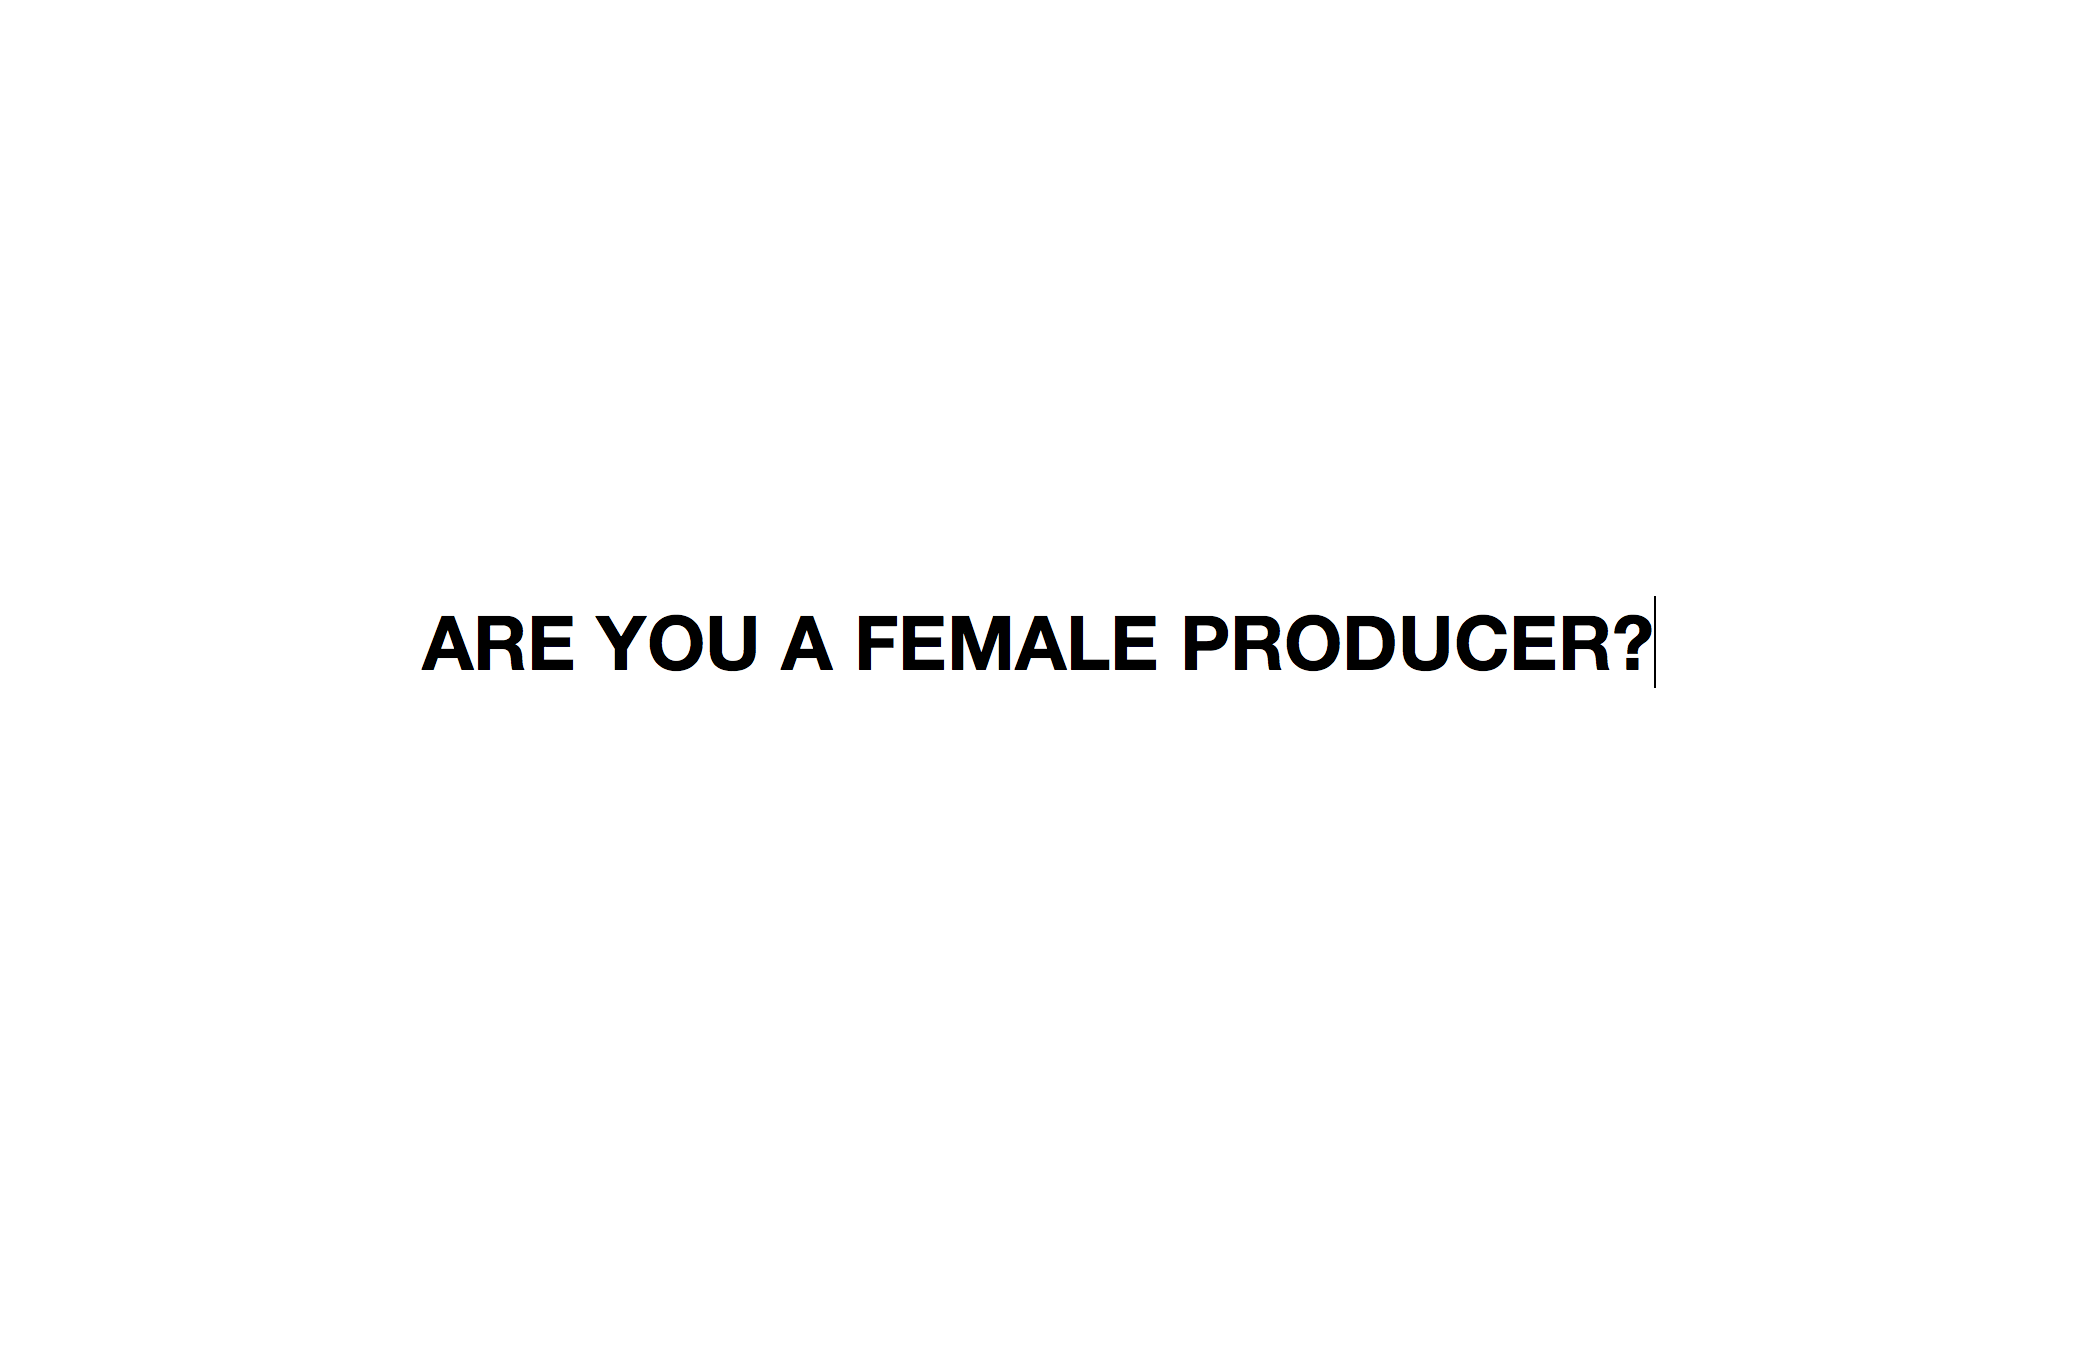 ARE YOU A FEMALE PRODUCER?